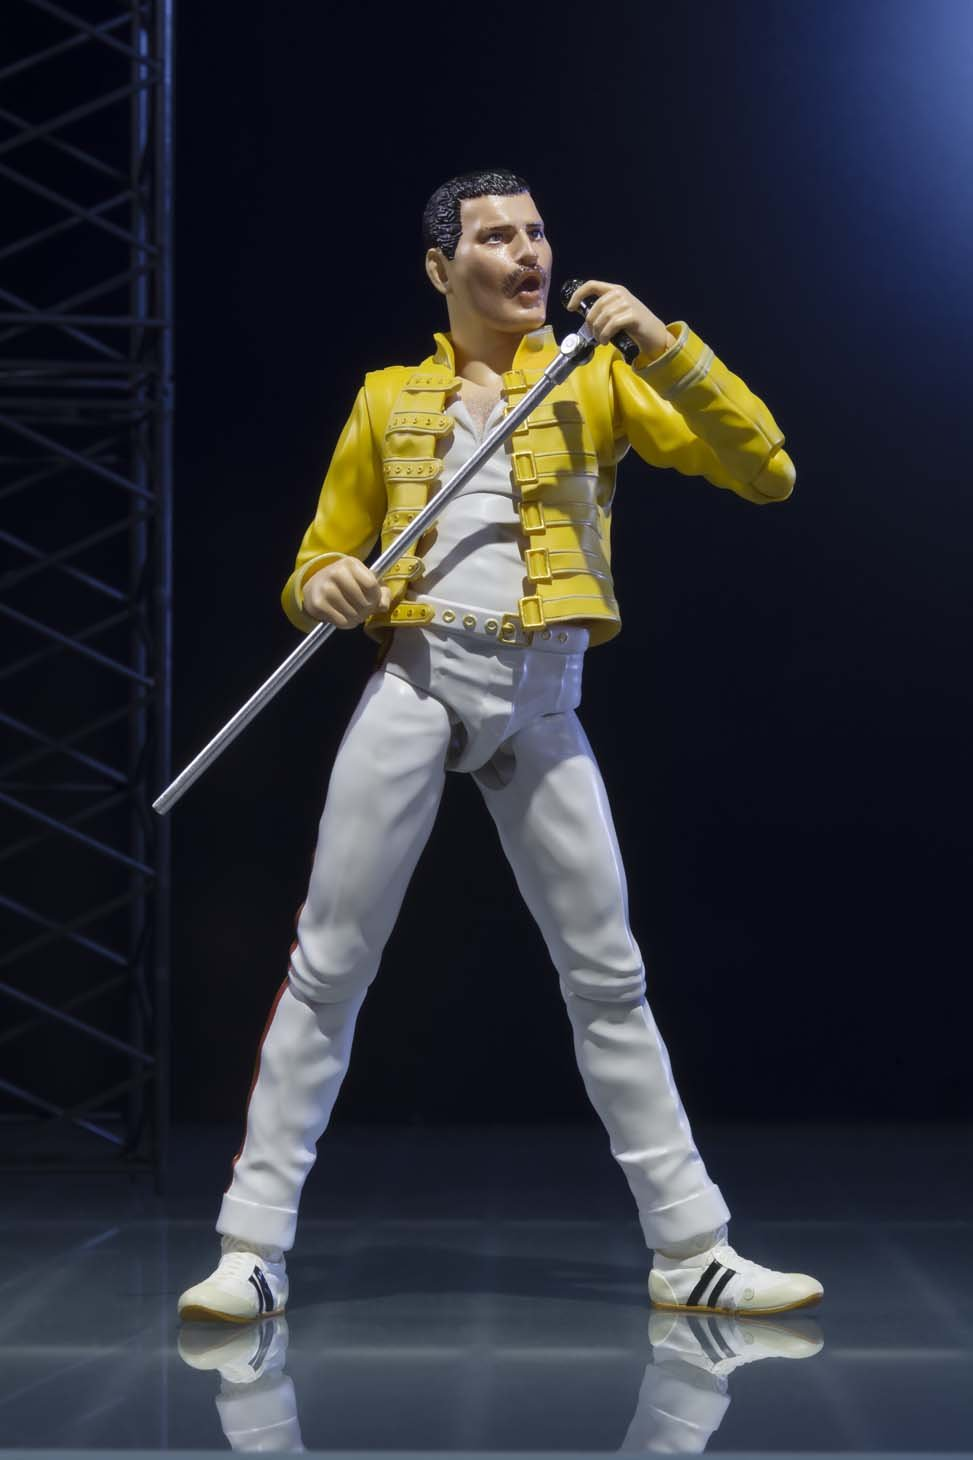 Freddie Mercury action figure